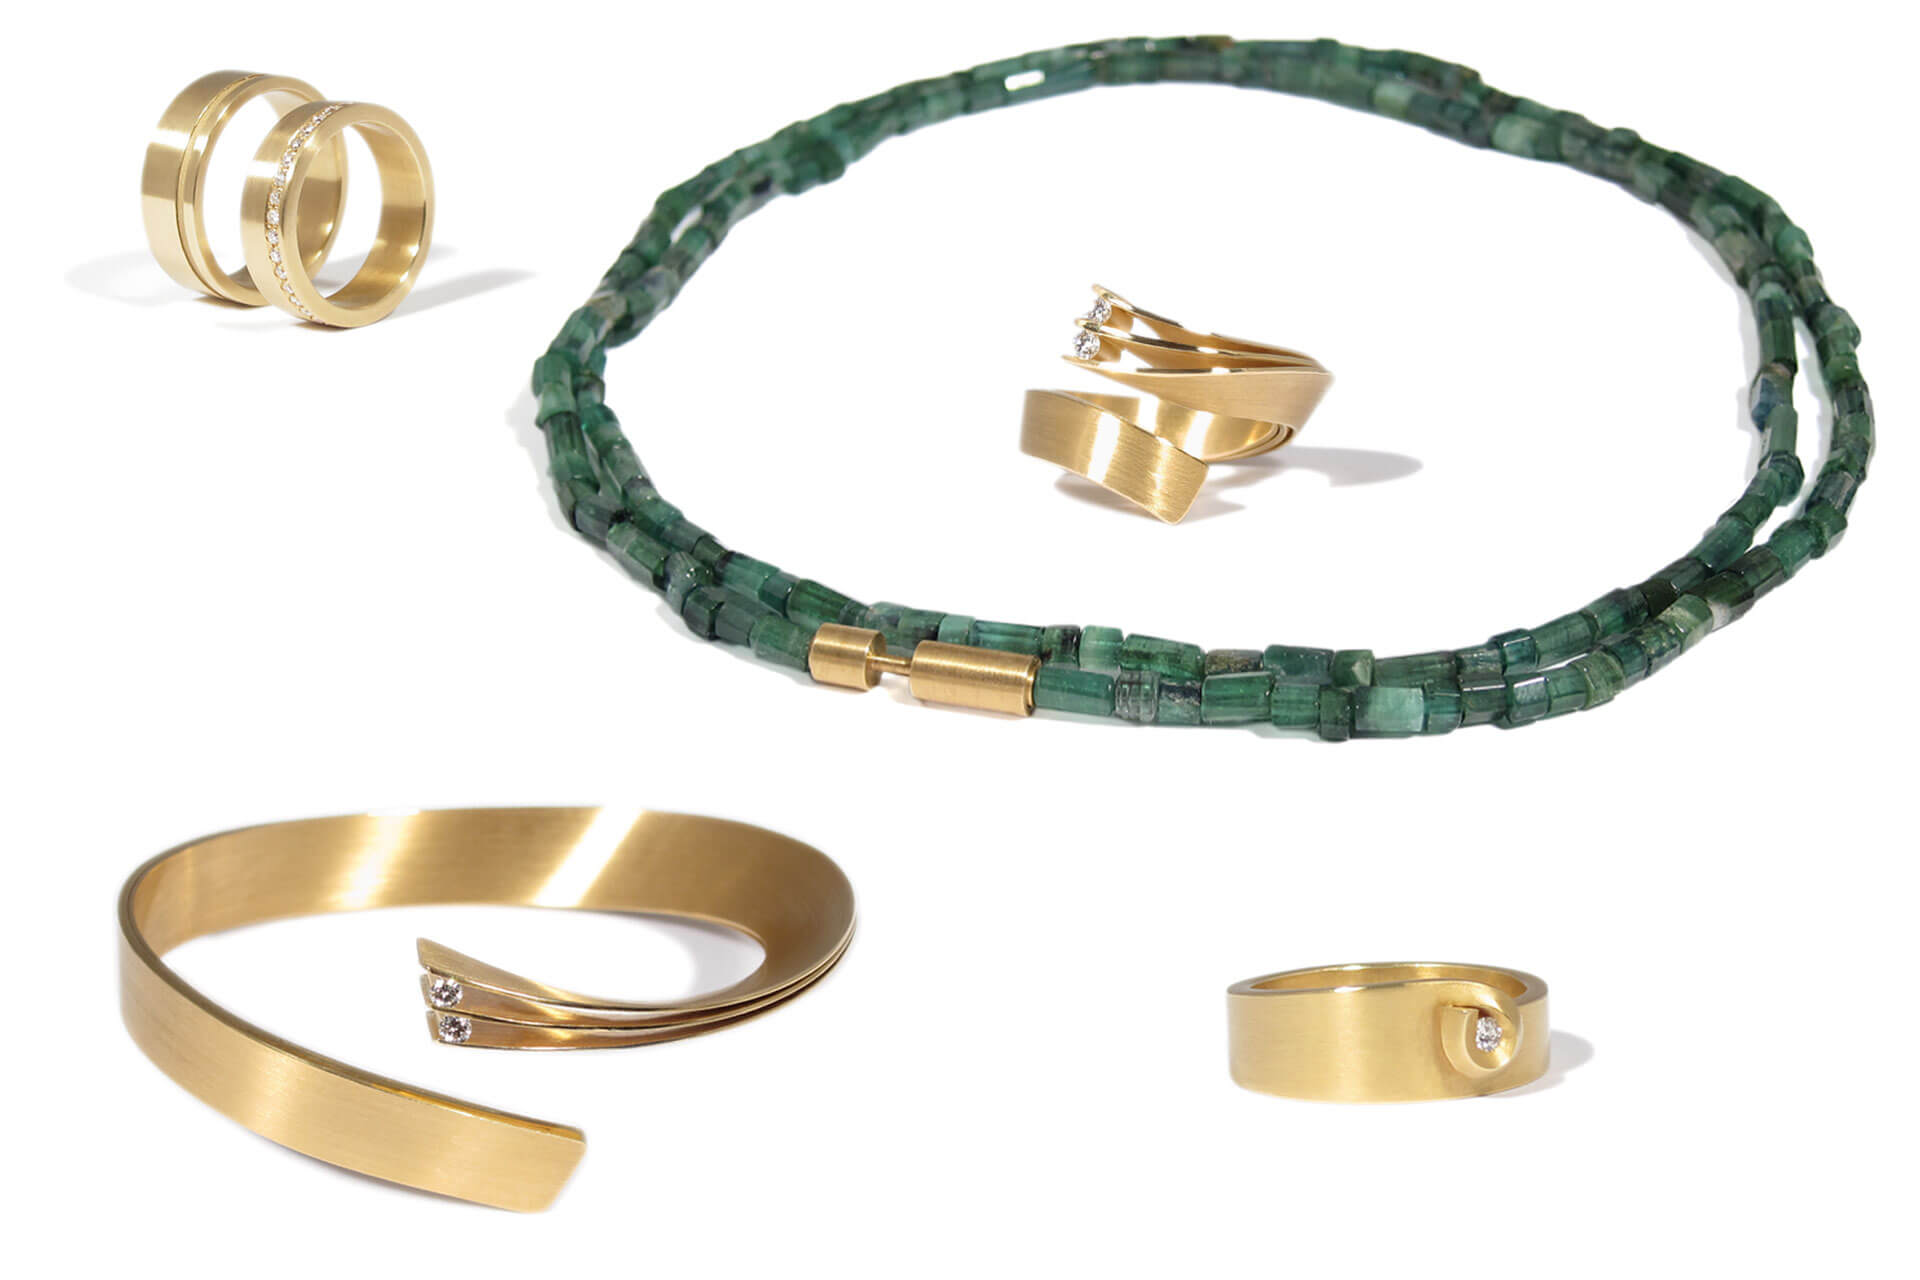 Gold rings, bracelets and a green tourmaline necklace, ideas for luxury gifts.